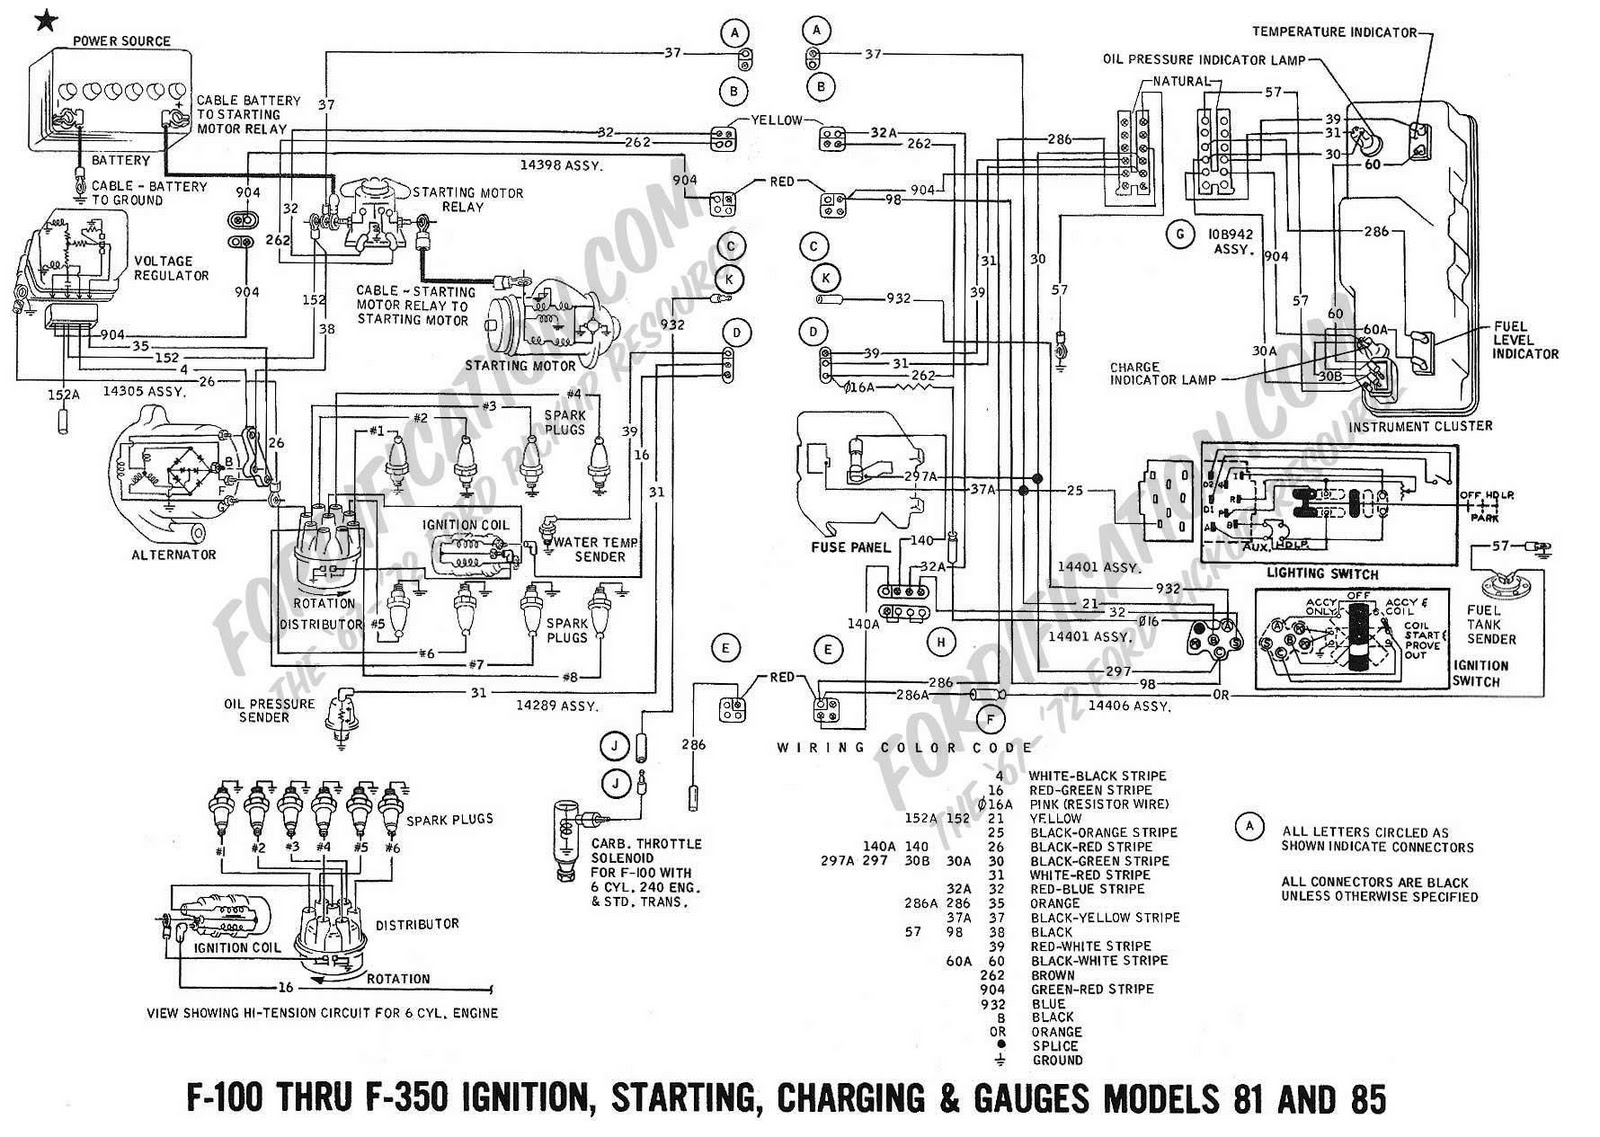 hight resolution of 1969 ford f100 f350 ignition starting charging and 1971 camaro wiper wiring 1969 camaro wiring schematic